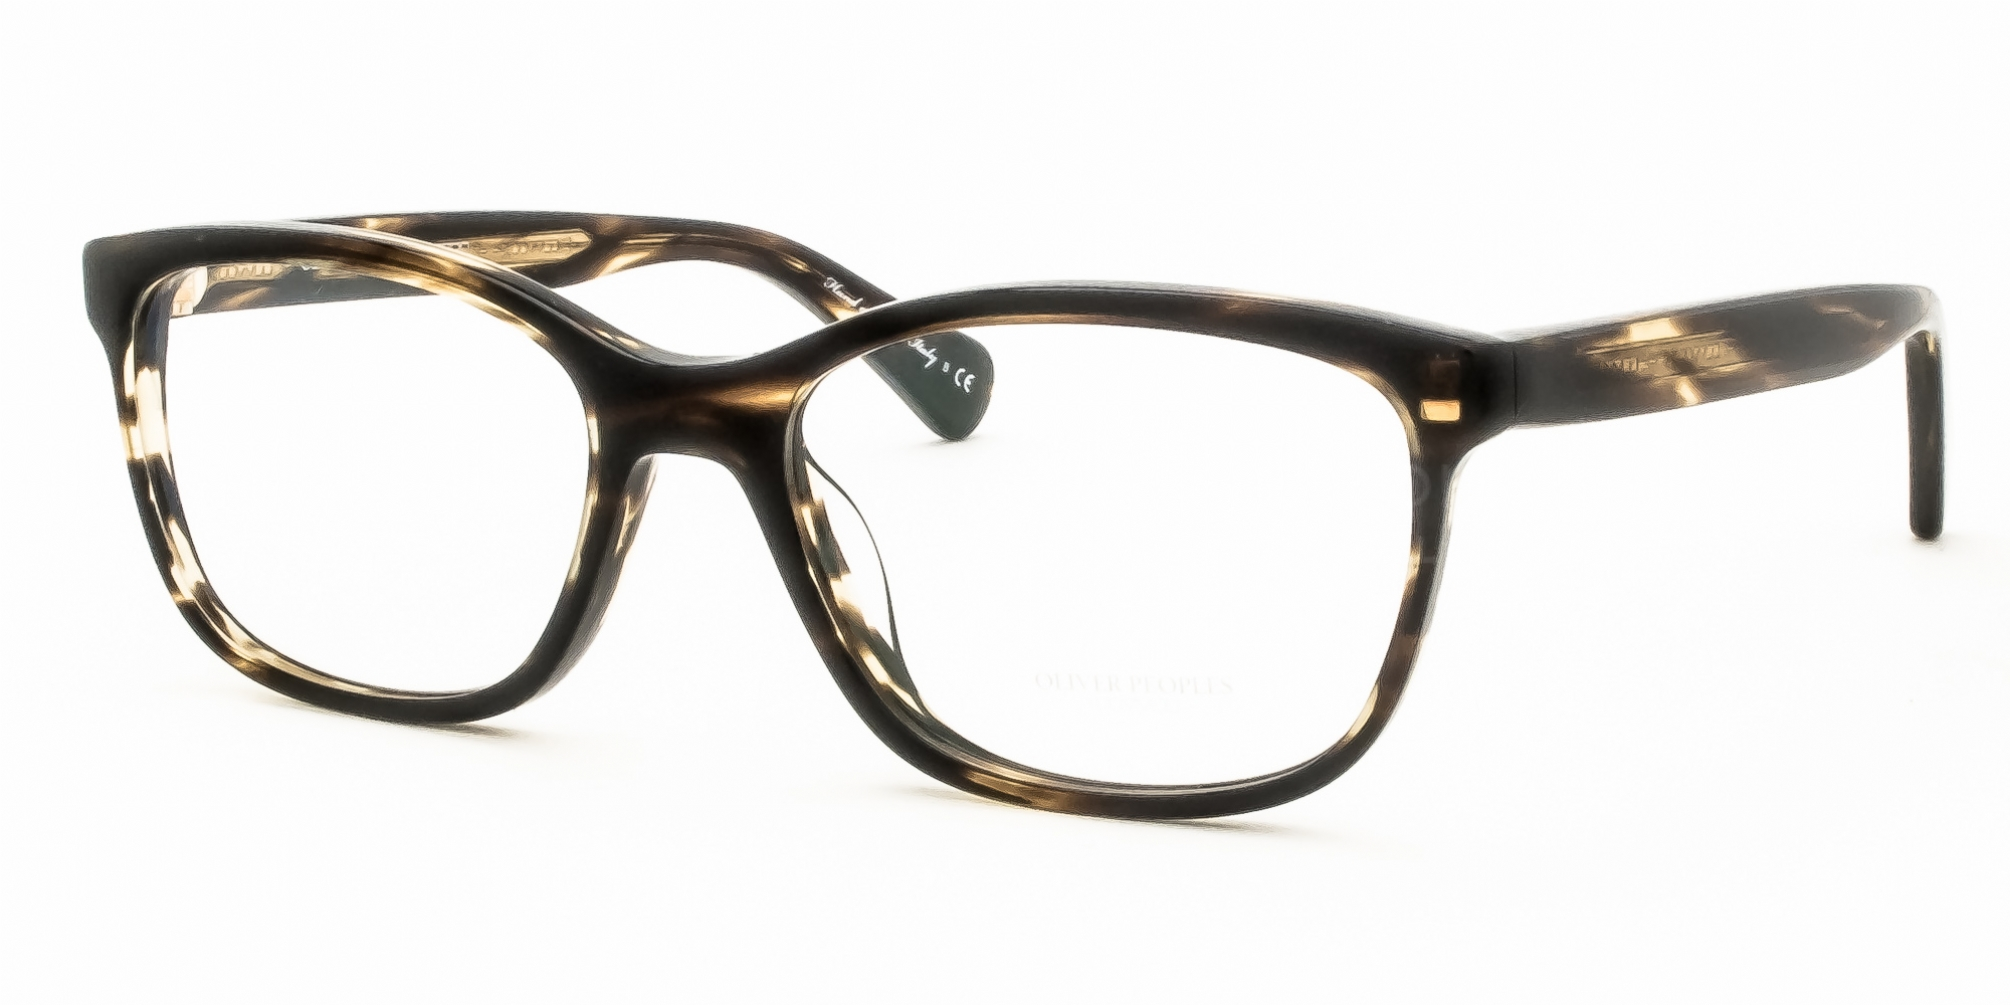 Buy Oliver Peoples Eyeglasses directly from OpticsFast.com